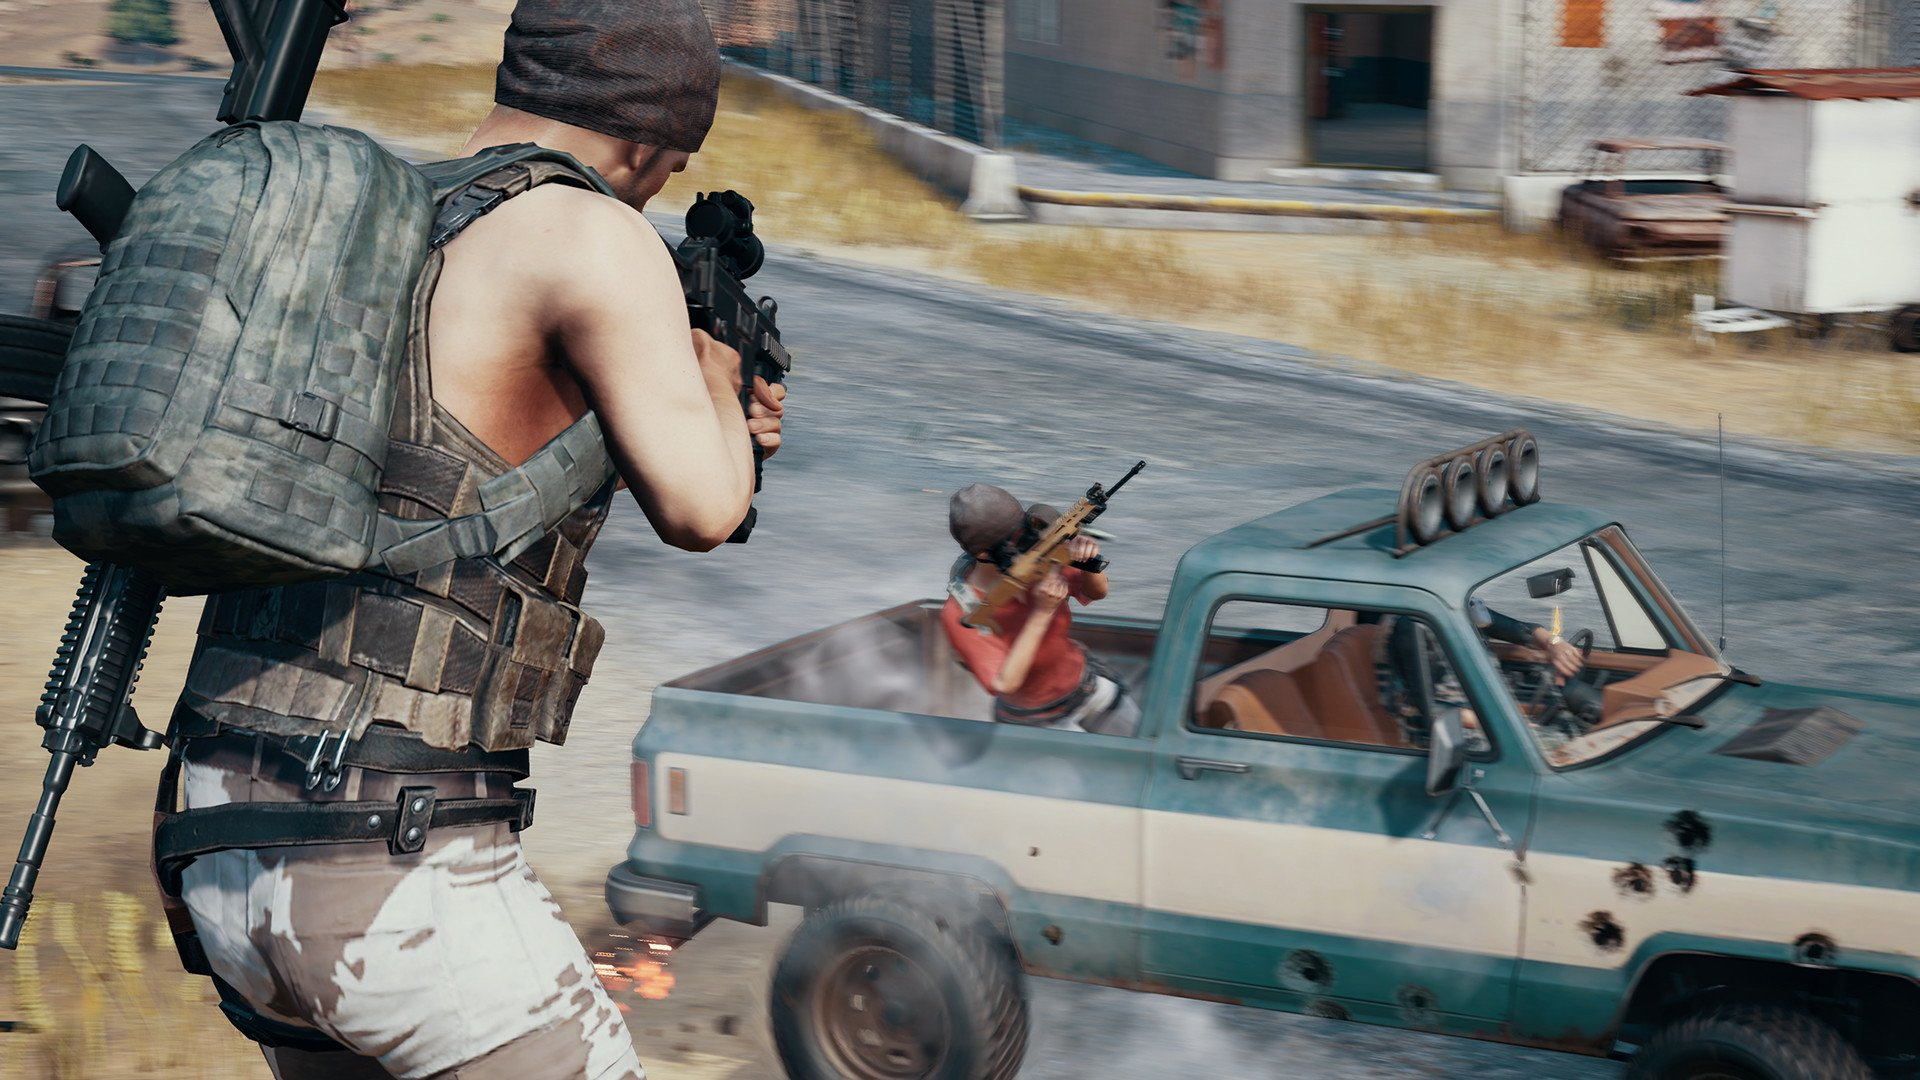 15 Arrested for Selling 'PUBG' Cheating Programs